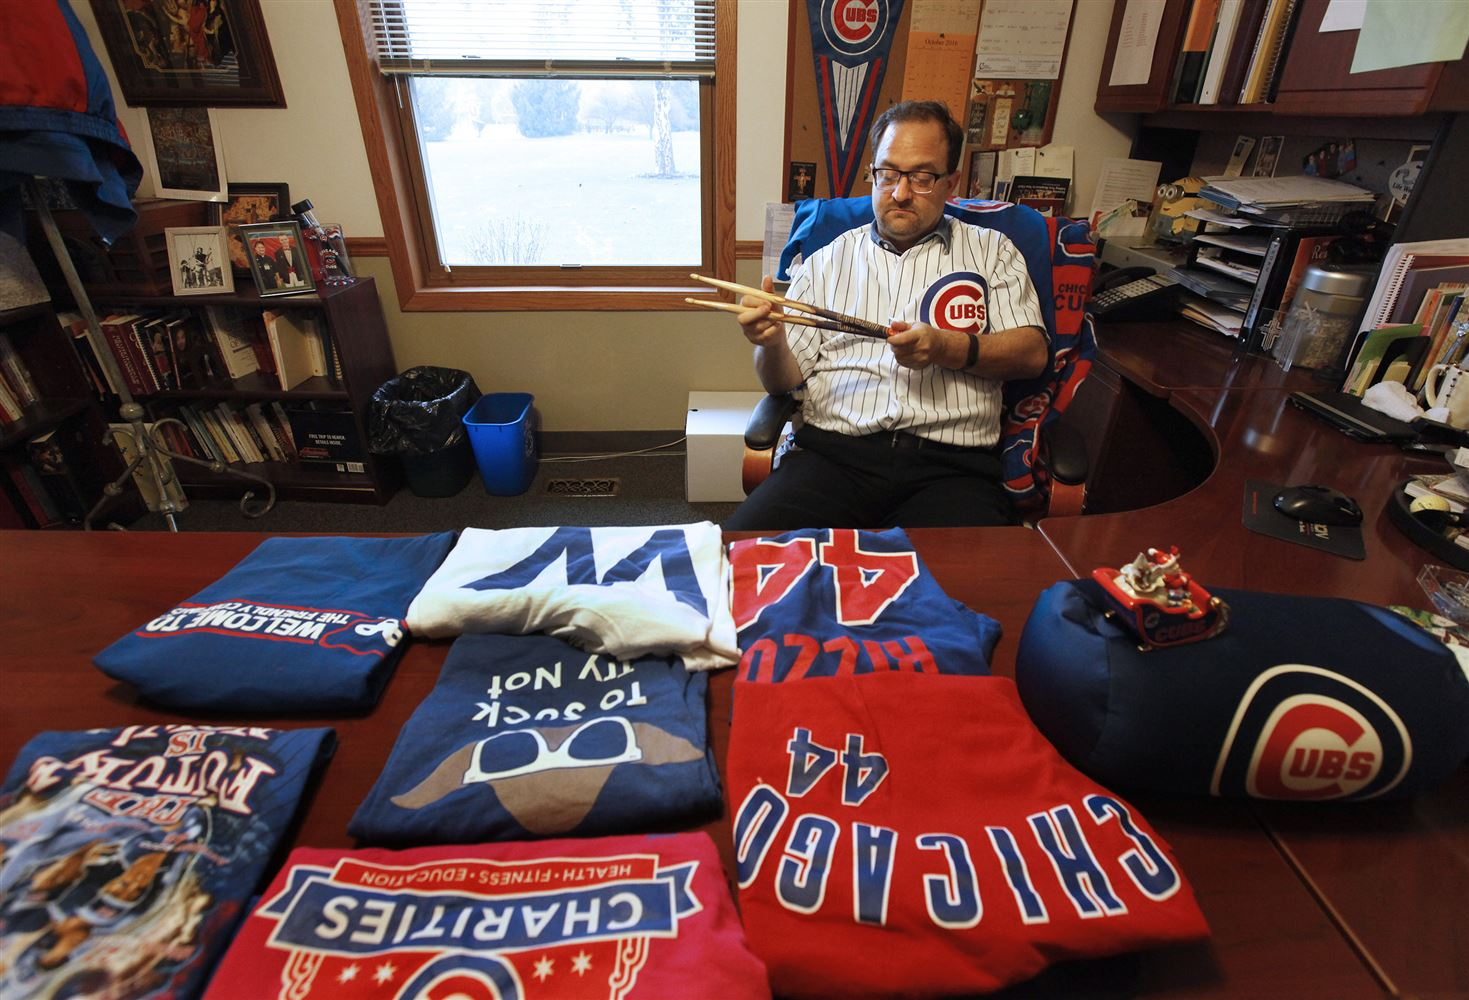 Father Michael Novick, Pastor Of St. Lawrence Ou0027Toole In Matteson, Holds  Cubs Drumsticks In His Office On Oct. 27. Cubs Shirts, Pennants And Other  ...